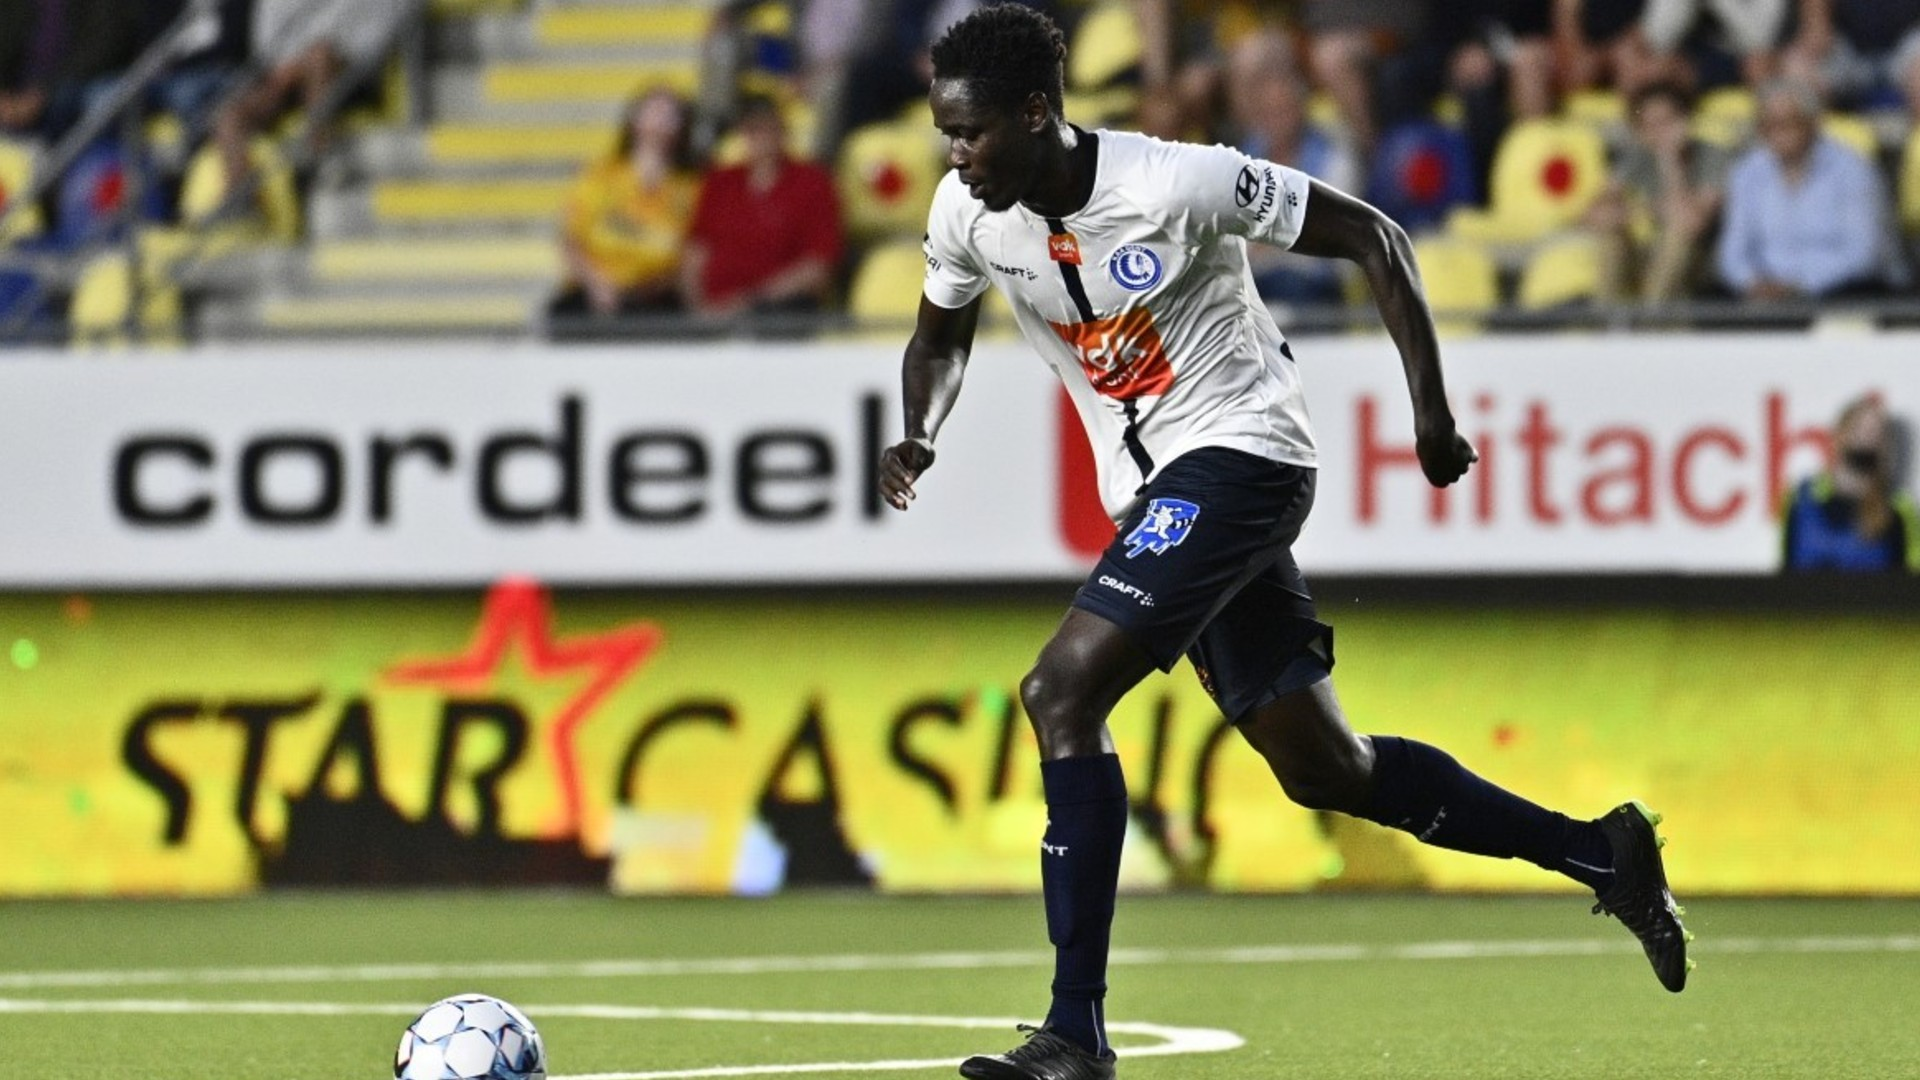 'It was a disappointing debut' – Okumu gutted as KAA Gent lose to Sint-Truidense VV